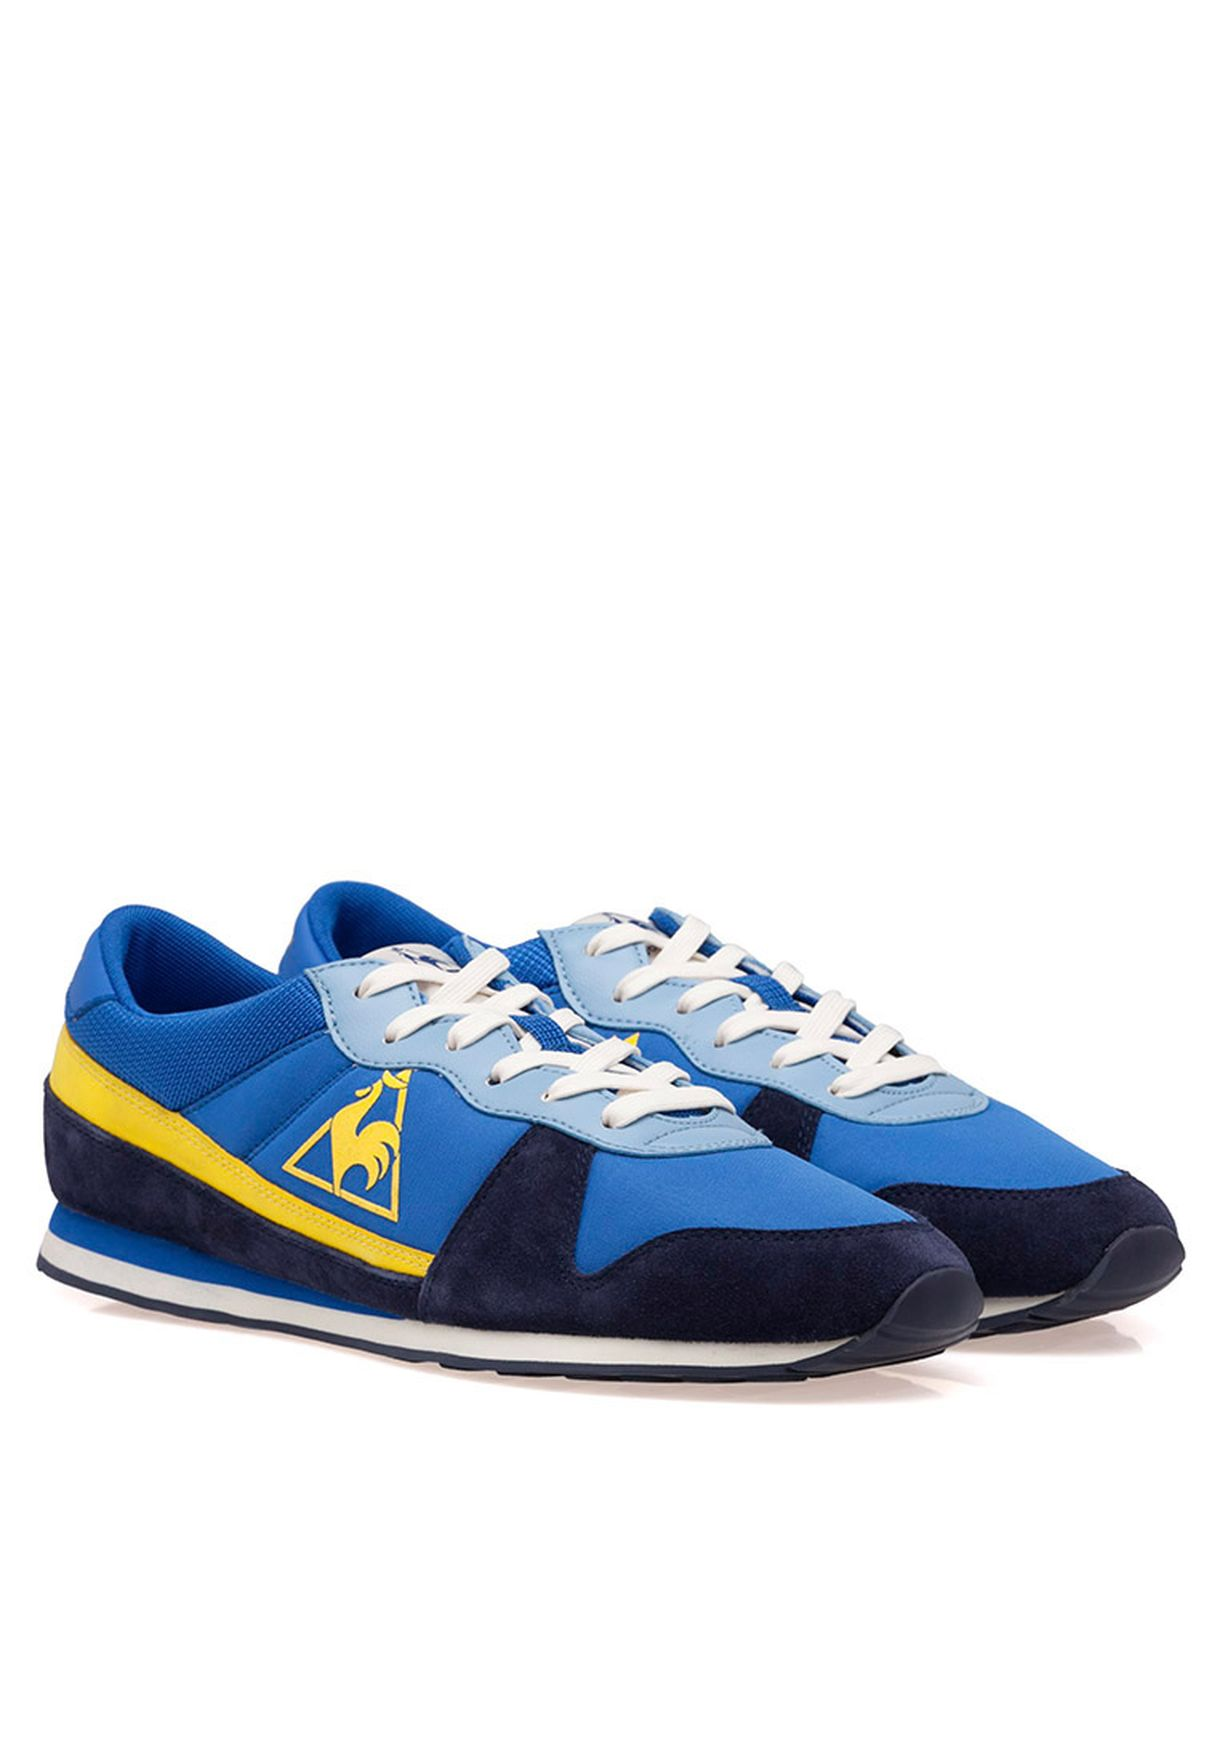 6191a8de4481 ... store shop le coq sportif blue casual lowtop sneakers for men in kuwait  le012sh93aec c34af 62157